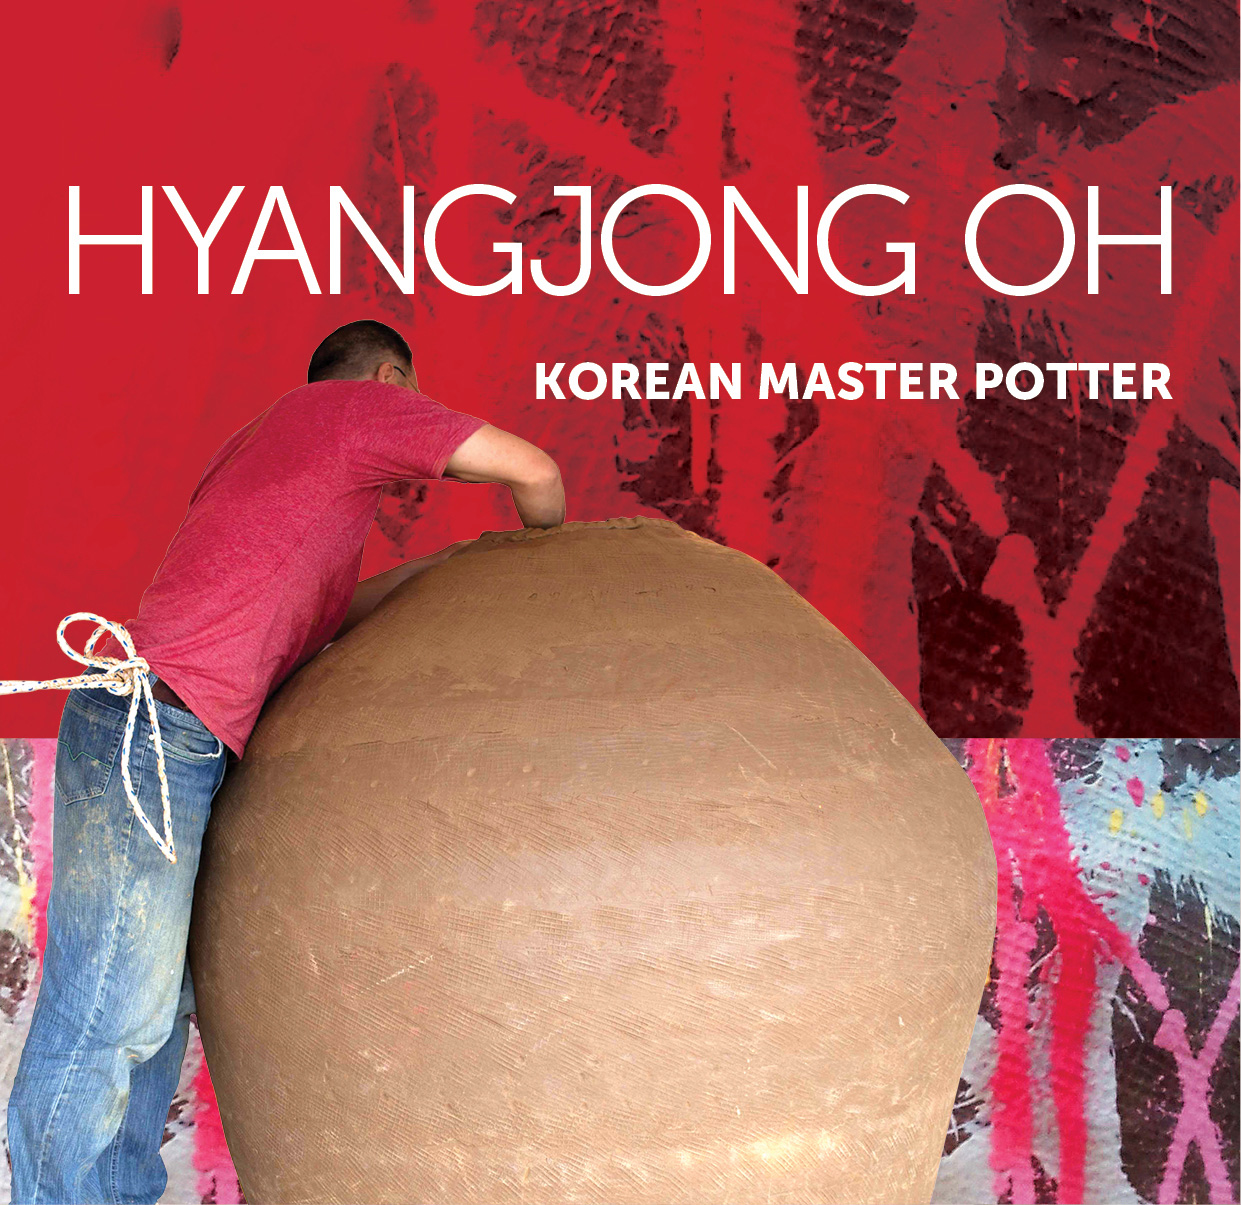 As part of this year's Clunes Ceramic Award, renowned Korean potter, Hyangjong Oh, will hold ceramic workshops in Daylesford and Clunes this September.